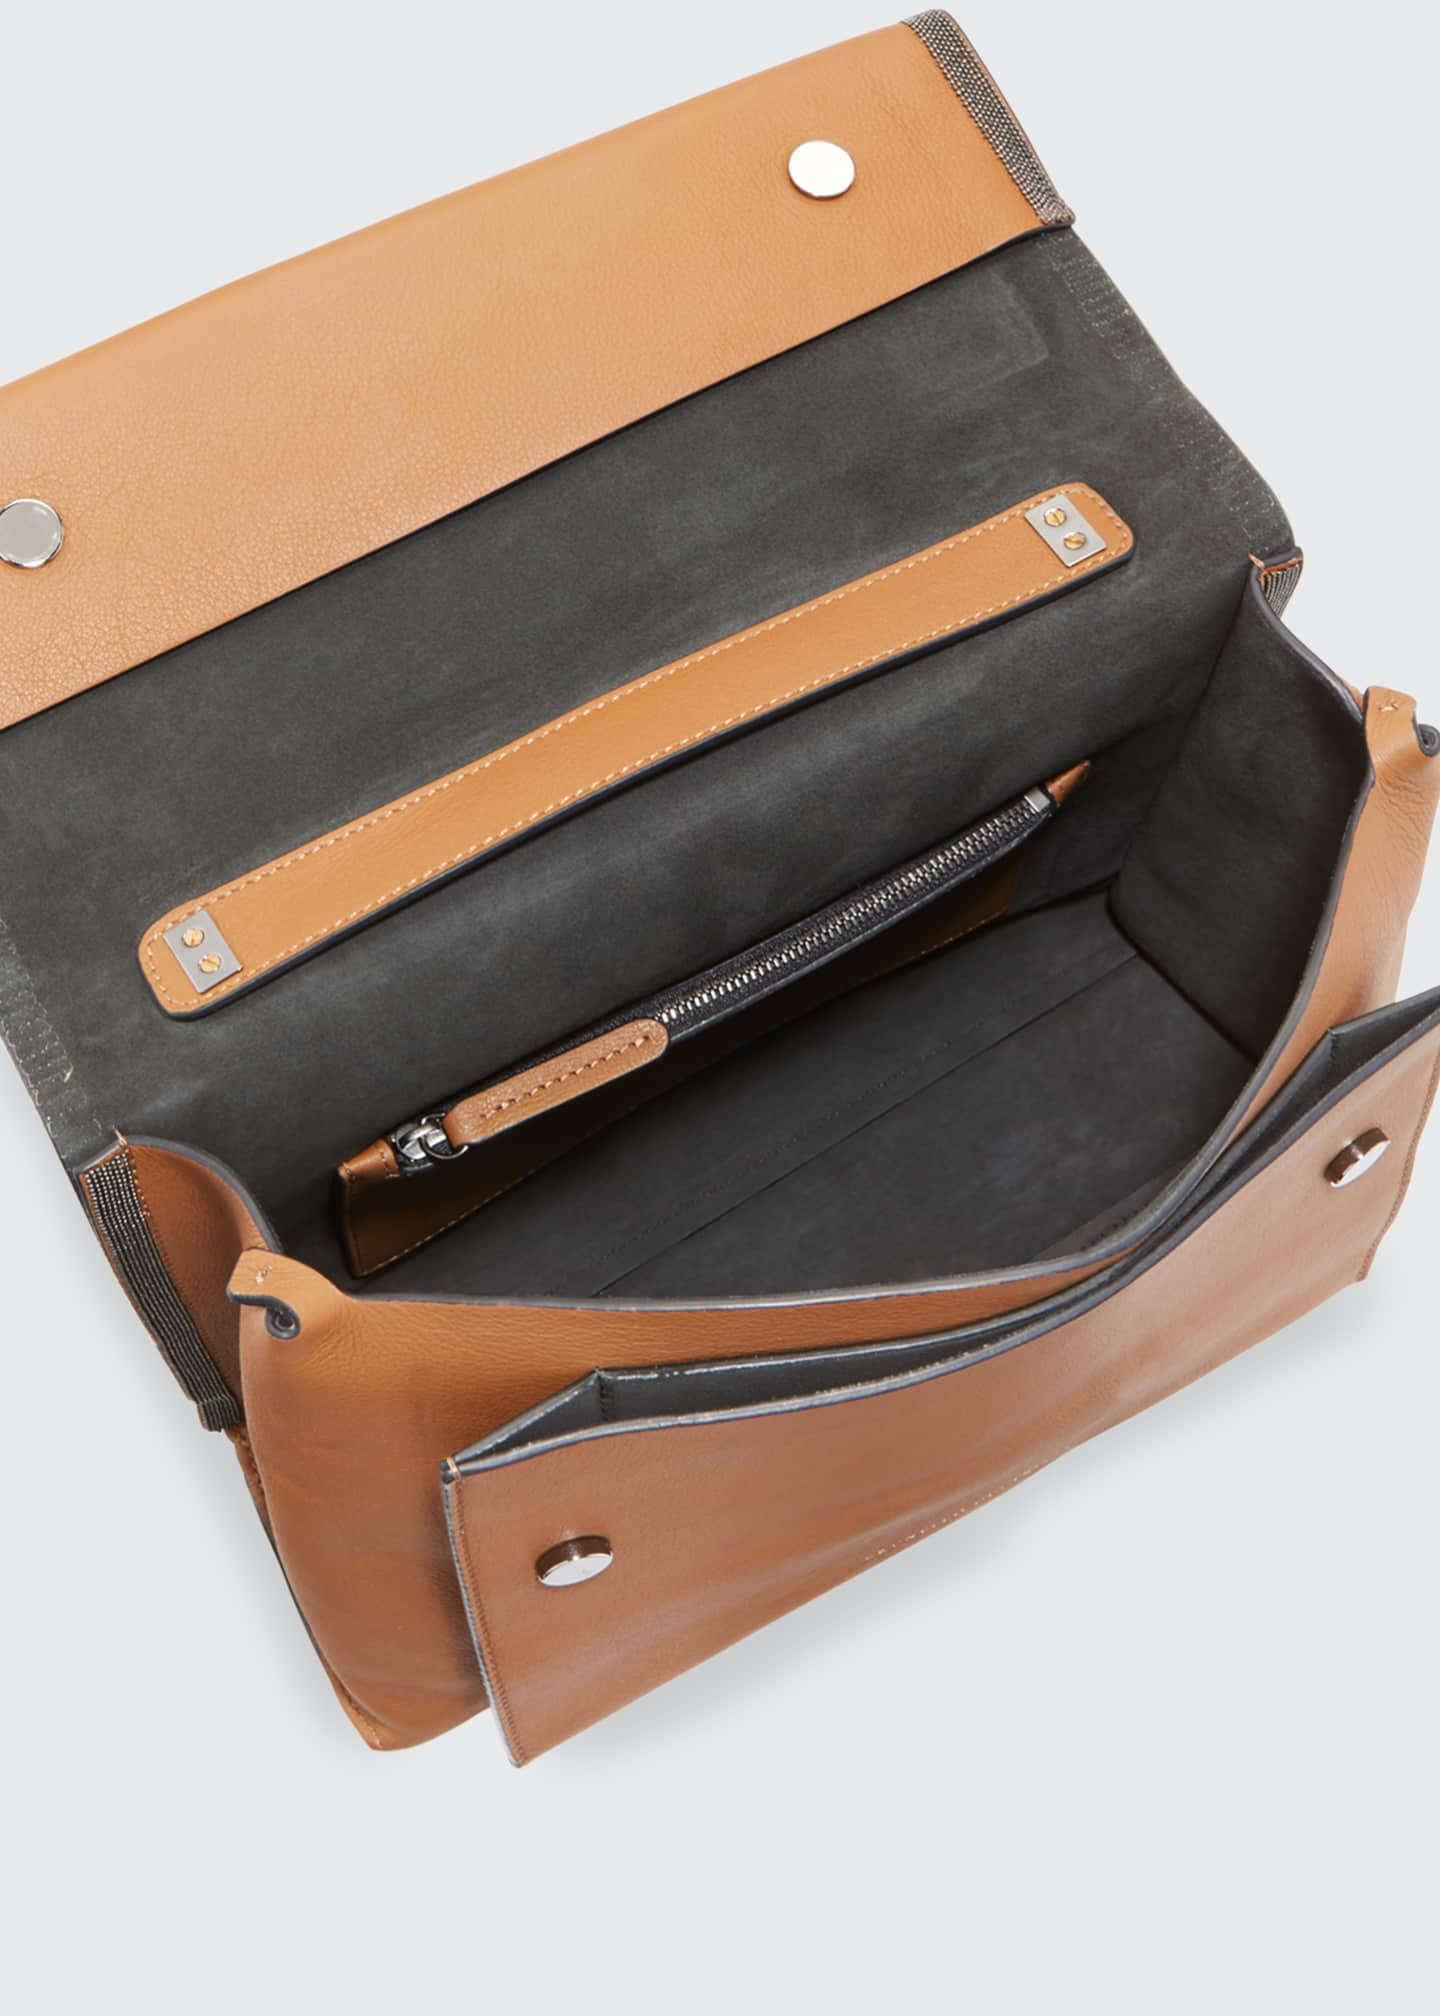 Image 3 of 3: Smooth Leather Flap Closure Bag